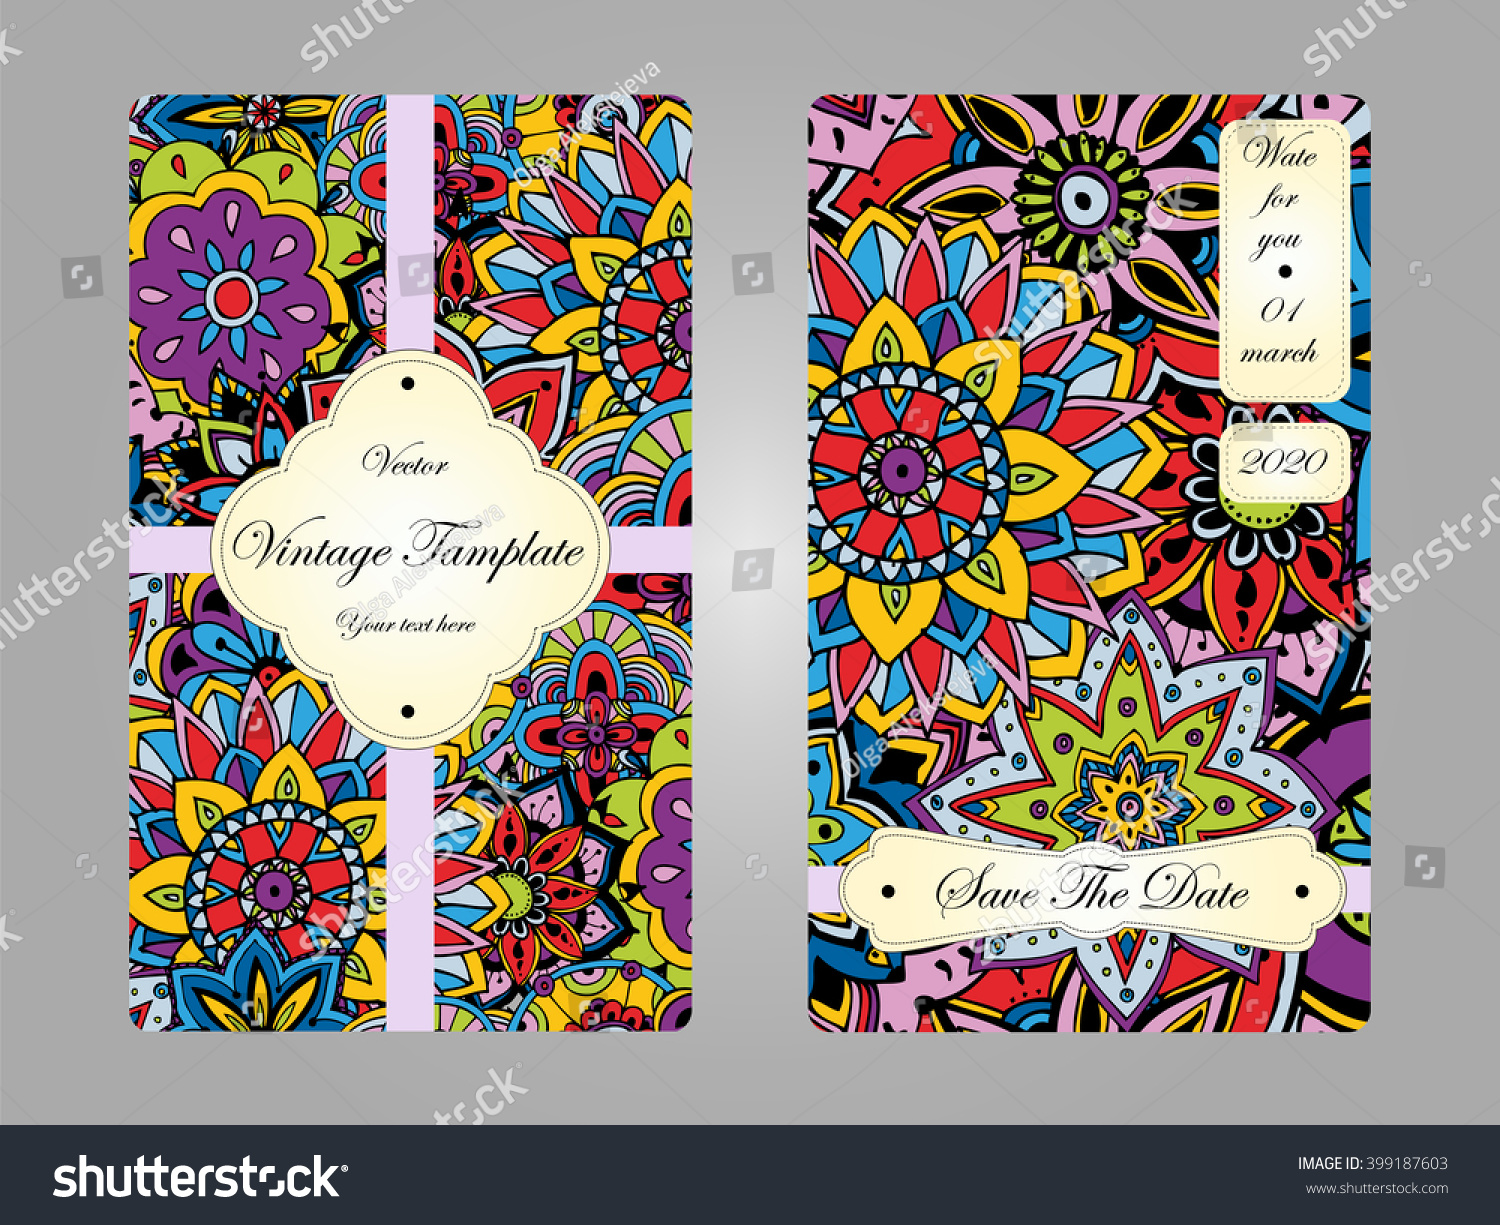 Vintage card wedding invitation business card stock vector vintage card wedding invitation business card for your business hand drawn doodle elements magicingreecefo Choice Image